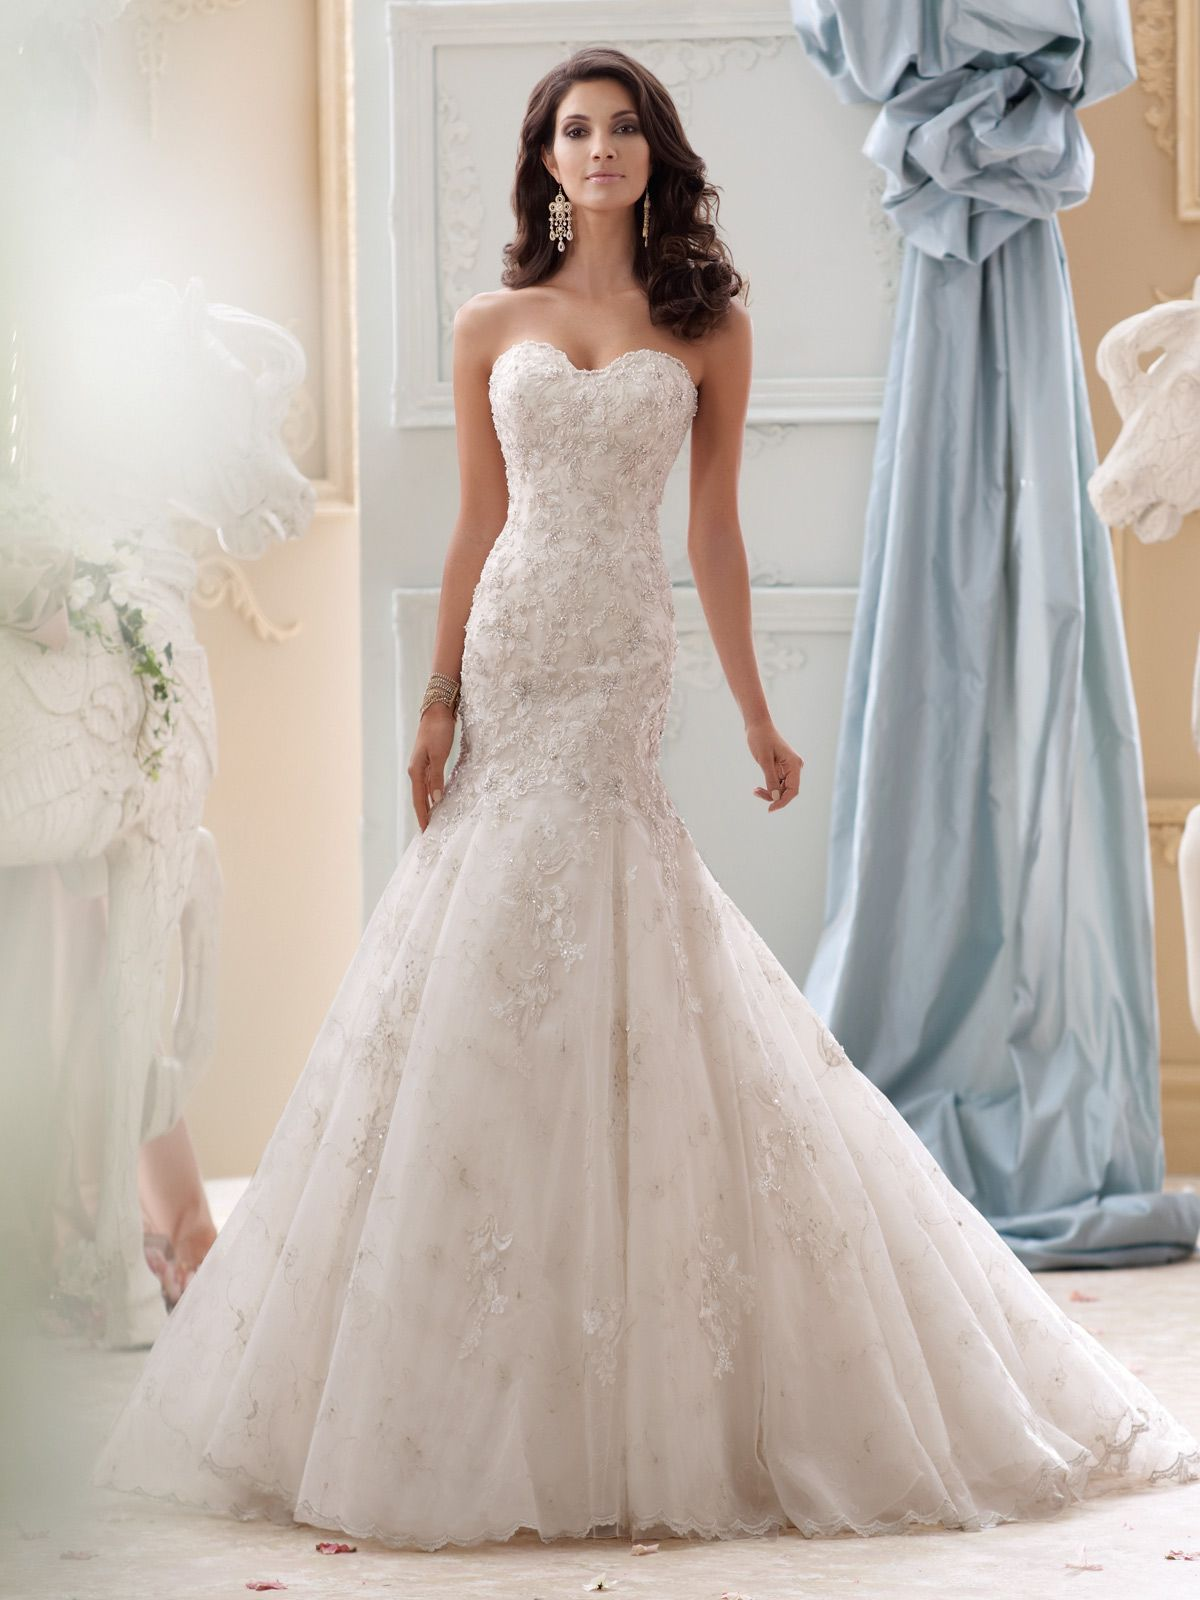 David Tutera For Mon Cheri Style 115232 Is One Of The Beautiful Blue Wedding Dresses In His Collection Bridal Gowns Click Details On This